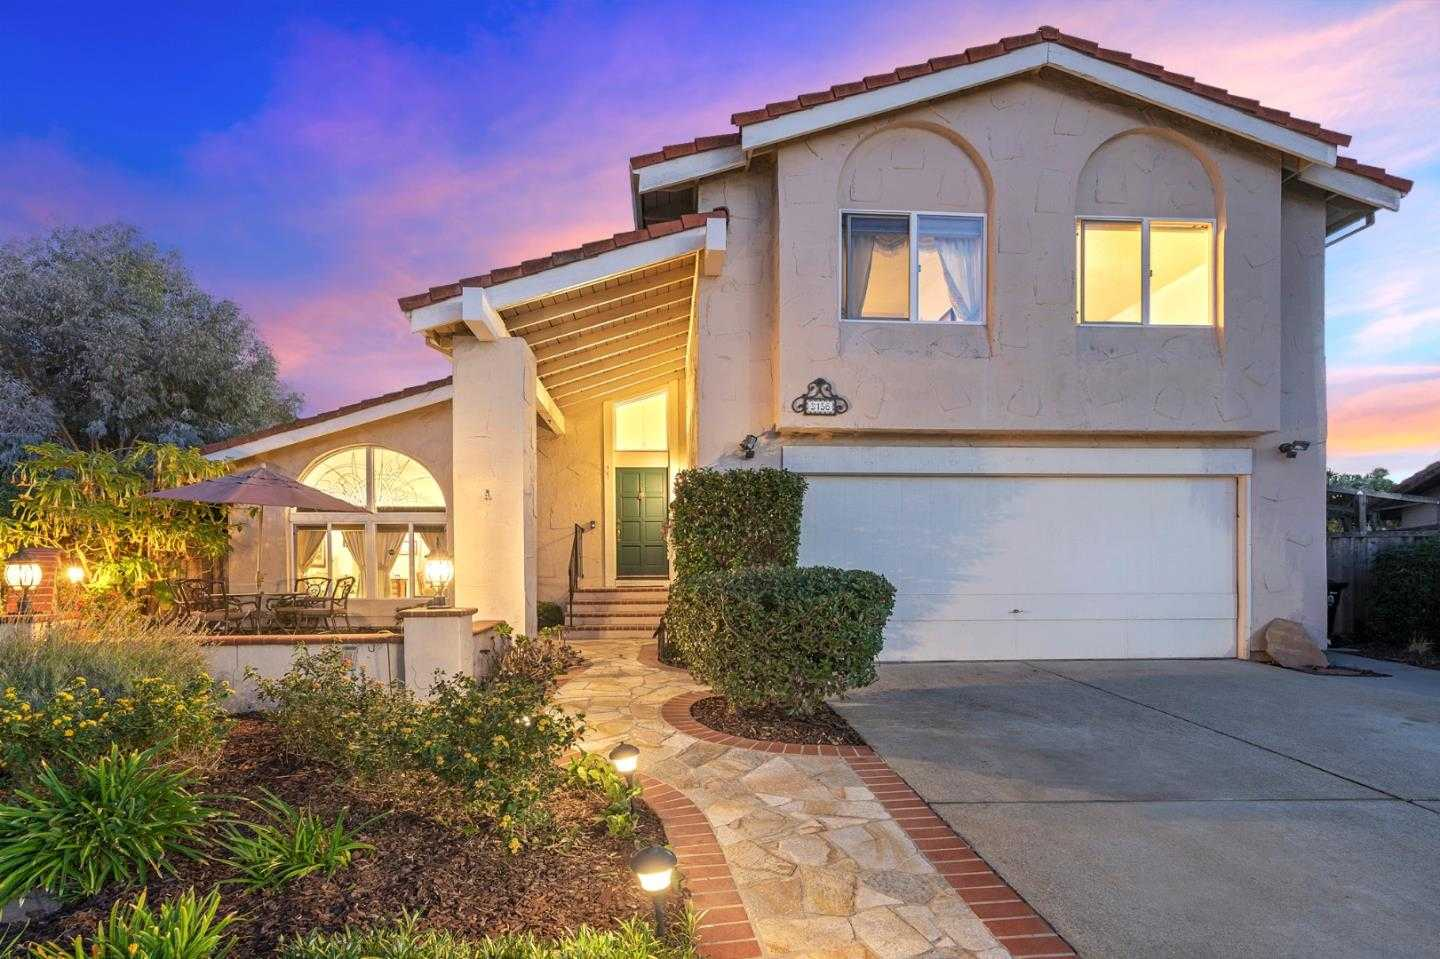 $1,330,000 - 3Br/3Ba -  for Sale in San Jose